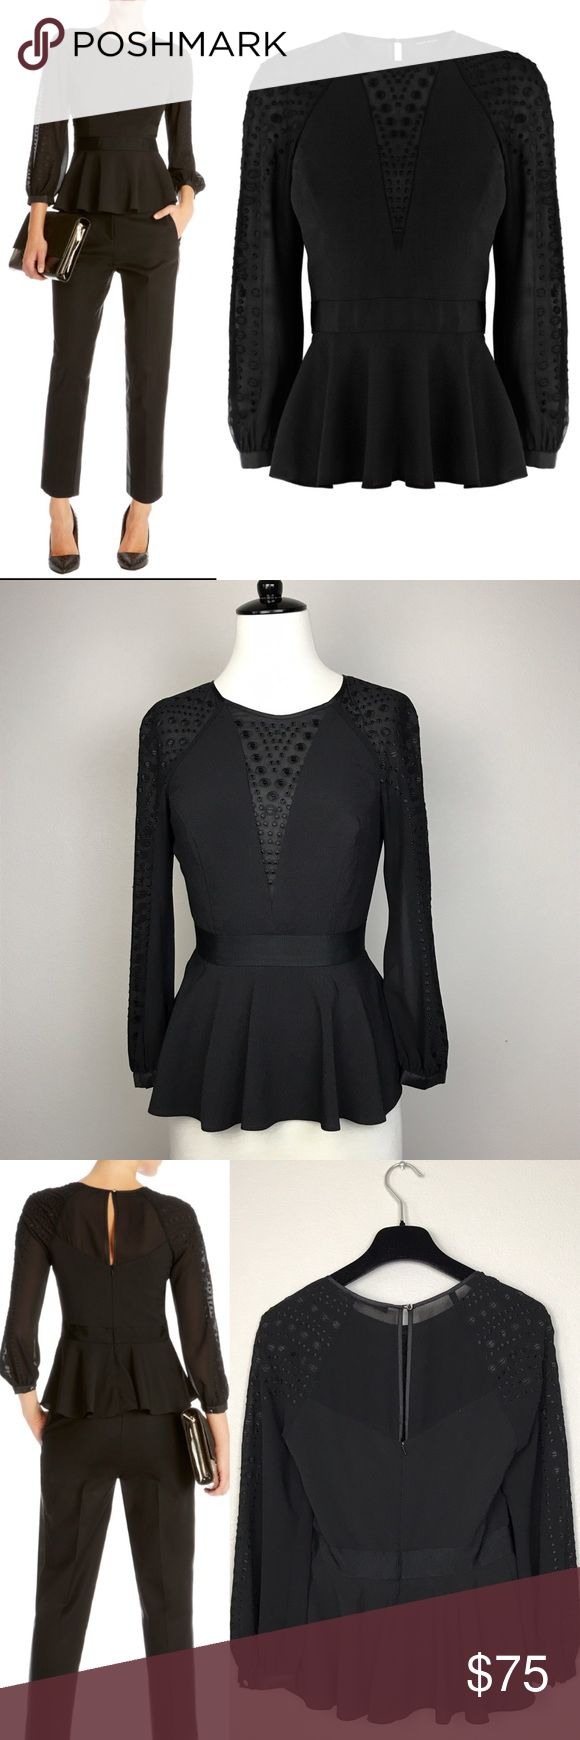 Karen Millen Black Long Sleeves Peplum Top In good condition, there is a small stain at the lower front (see last picture). US size 2. 100% polyester. Karen Millen Tops